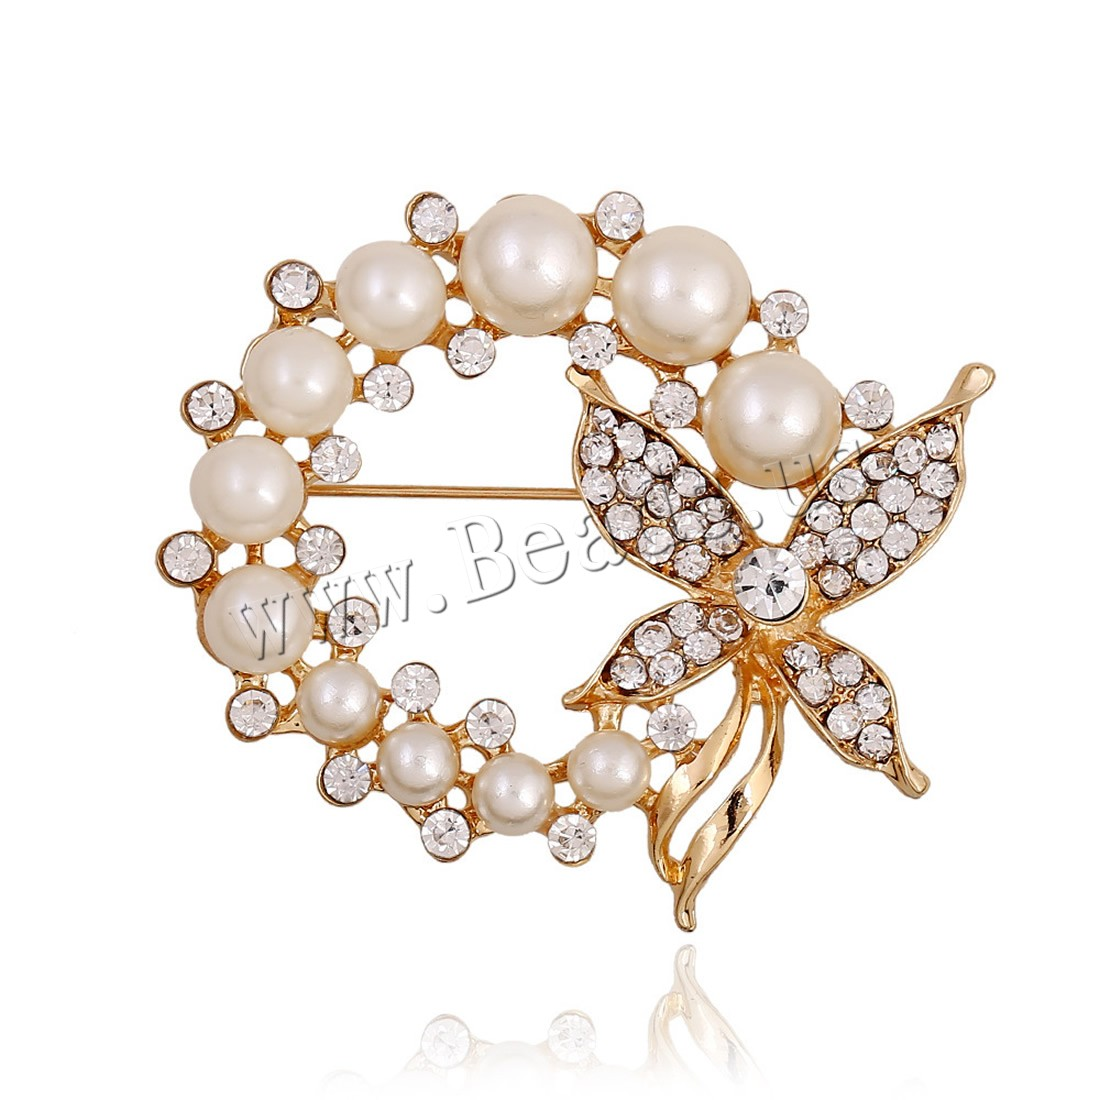 Buy Plastic Pearl Brooch Zinc Alloy ABS Plastic Pearl gold color plated woman & rhinestone lead & cadmium free 55x40mm Sold PC